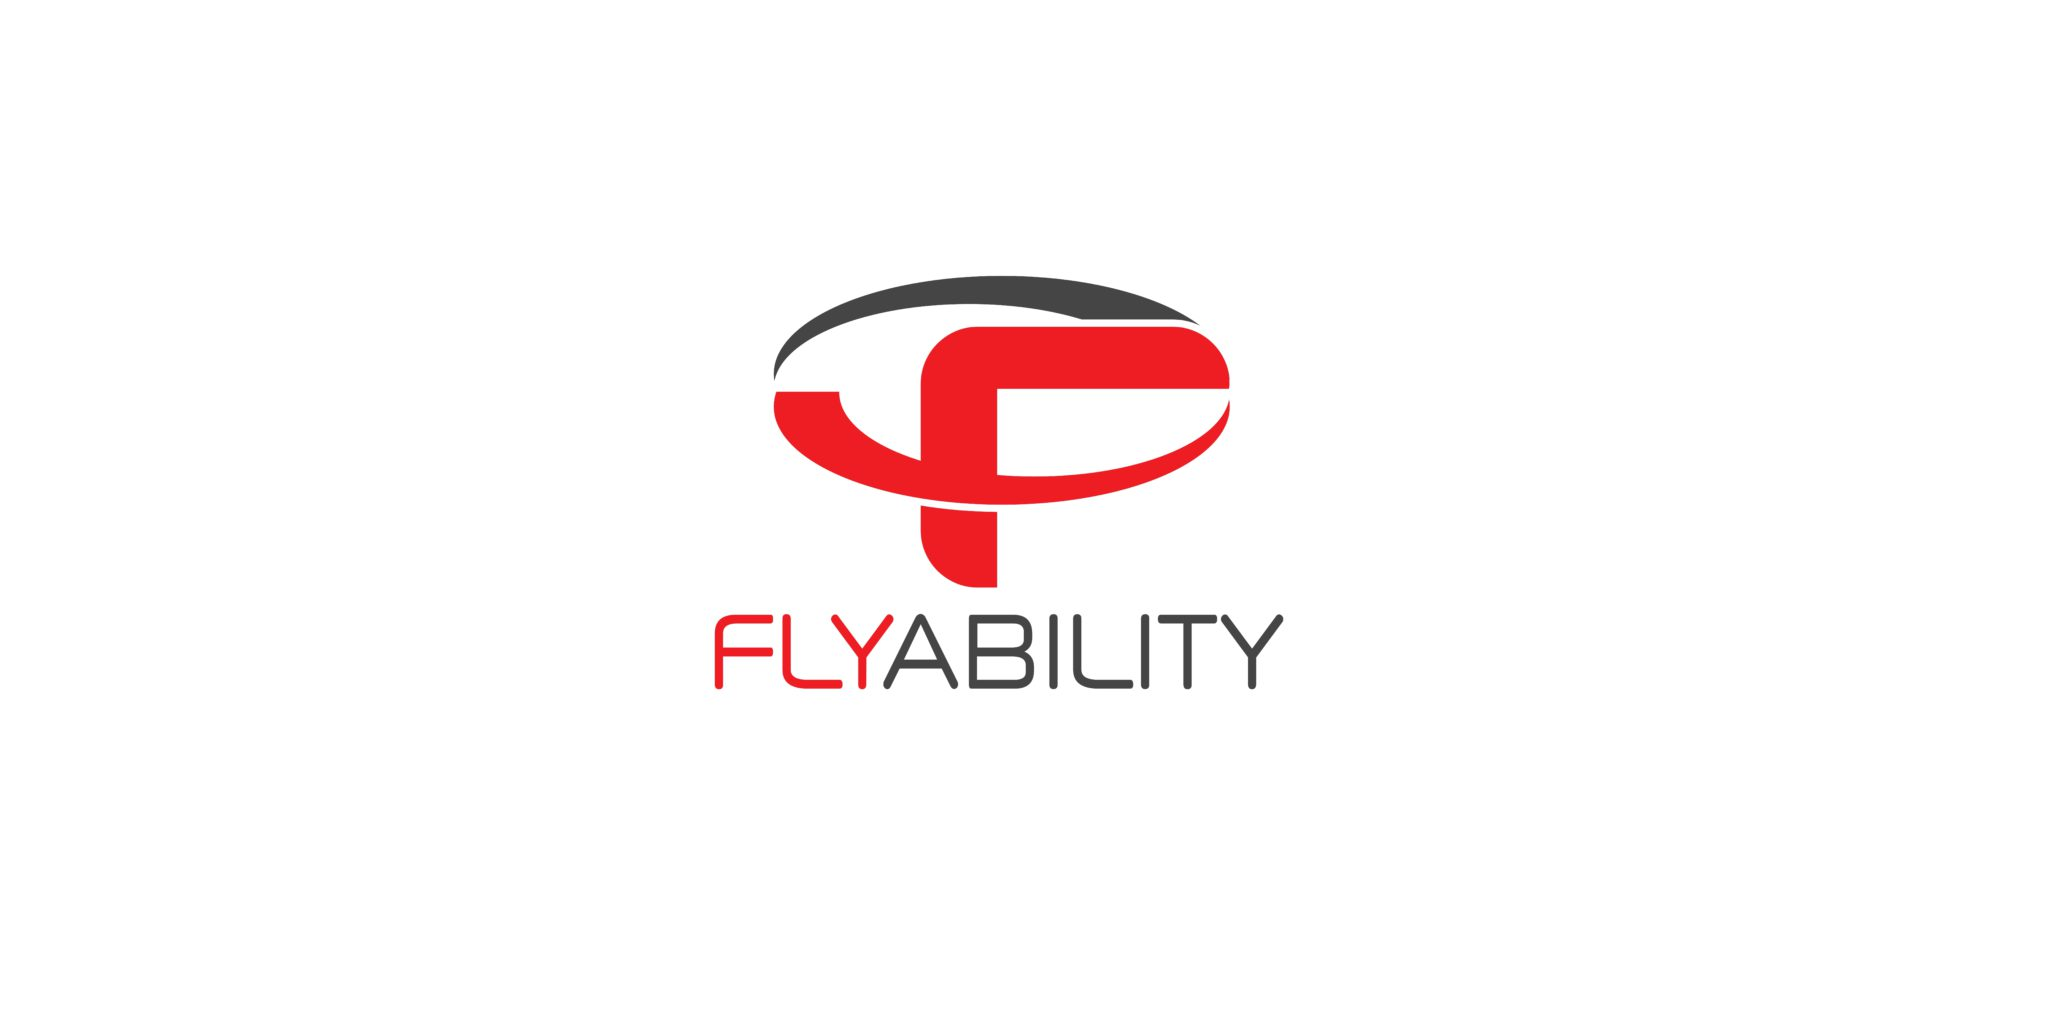 DJI and Flyability partner to bring collision-tolerance to UAVs